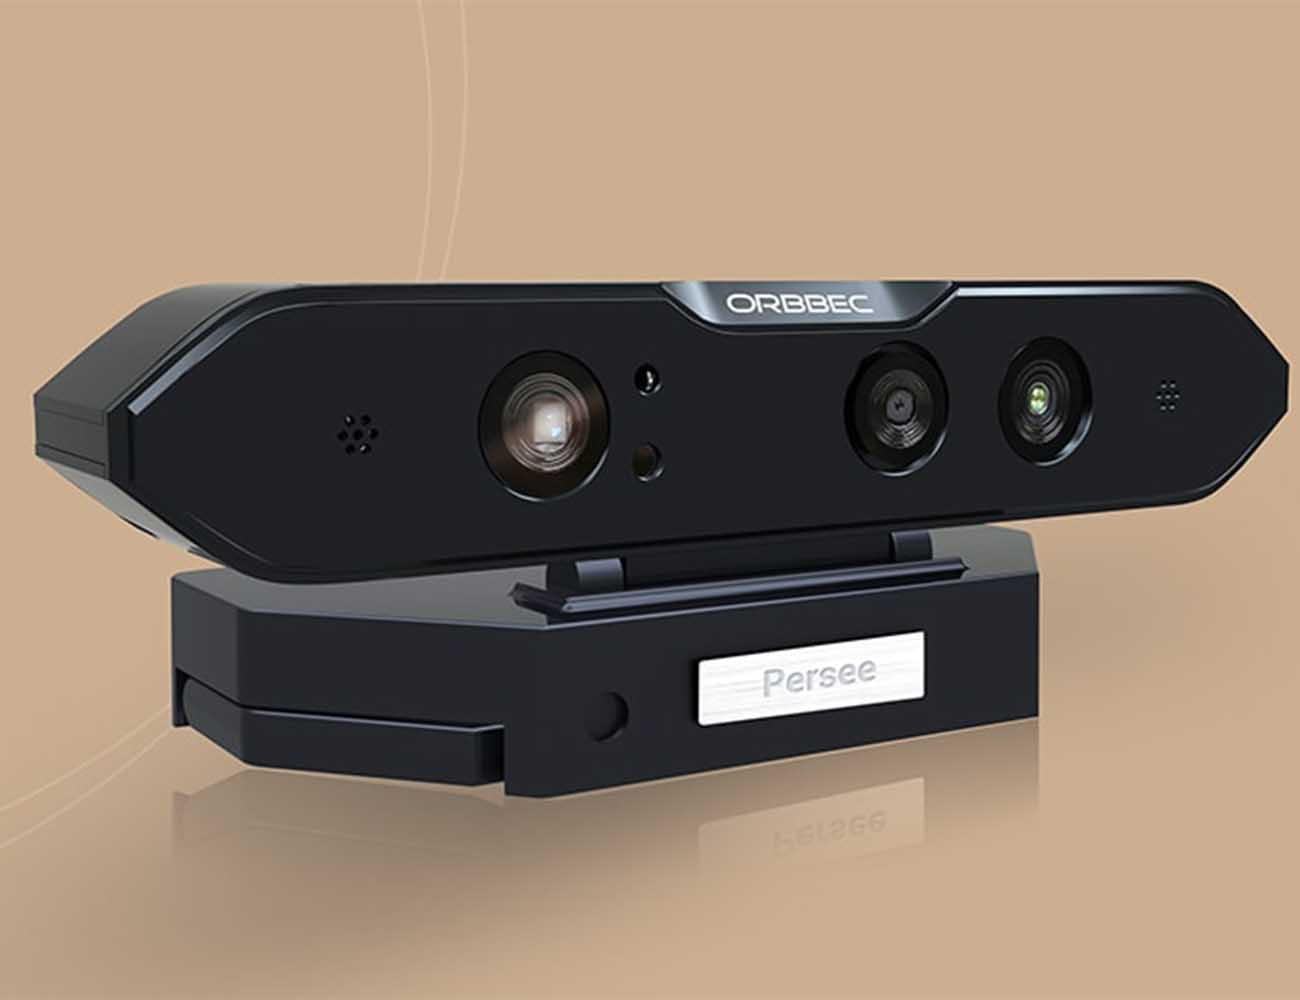 Orbbec Persee – The World's First 3D Camera-Computer